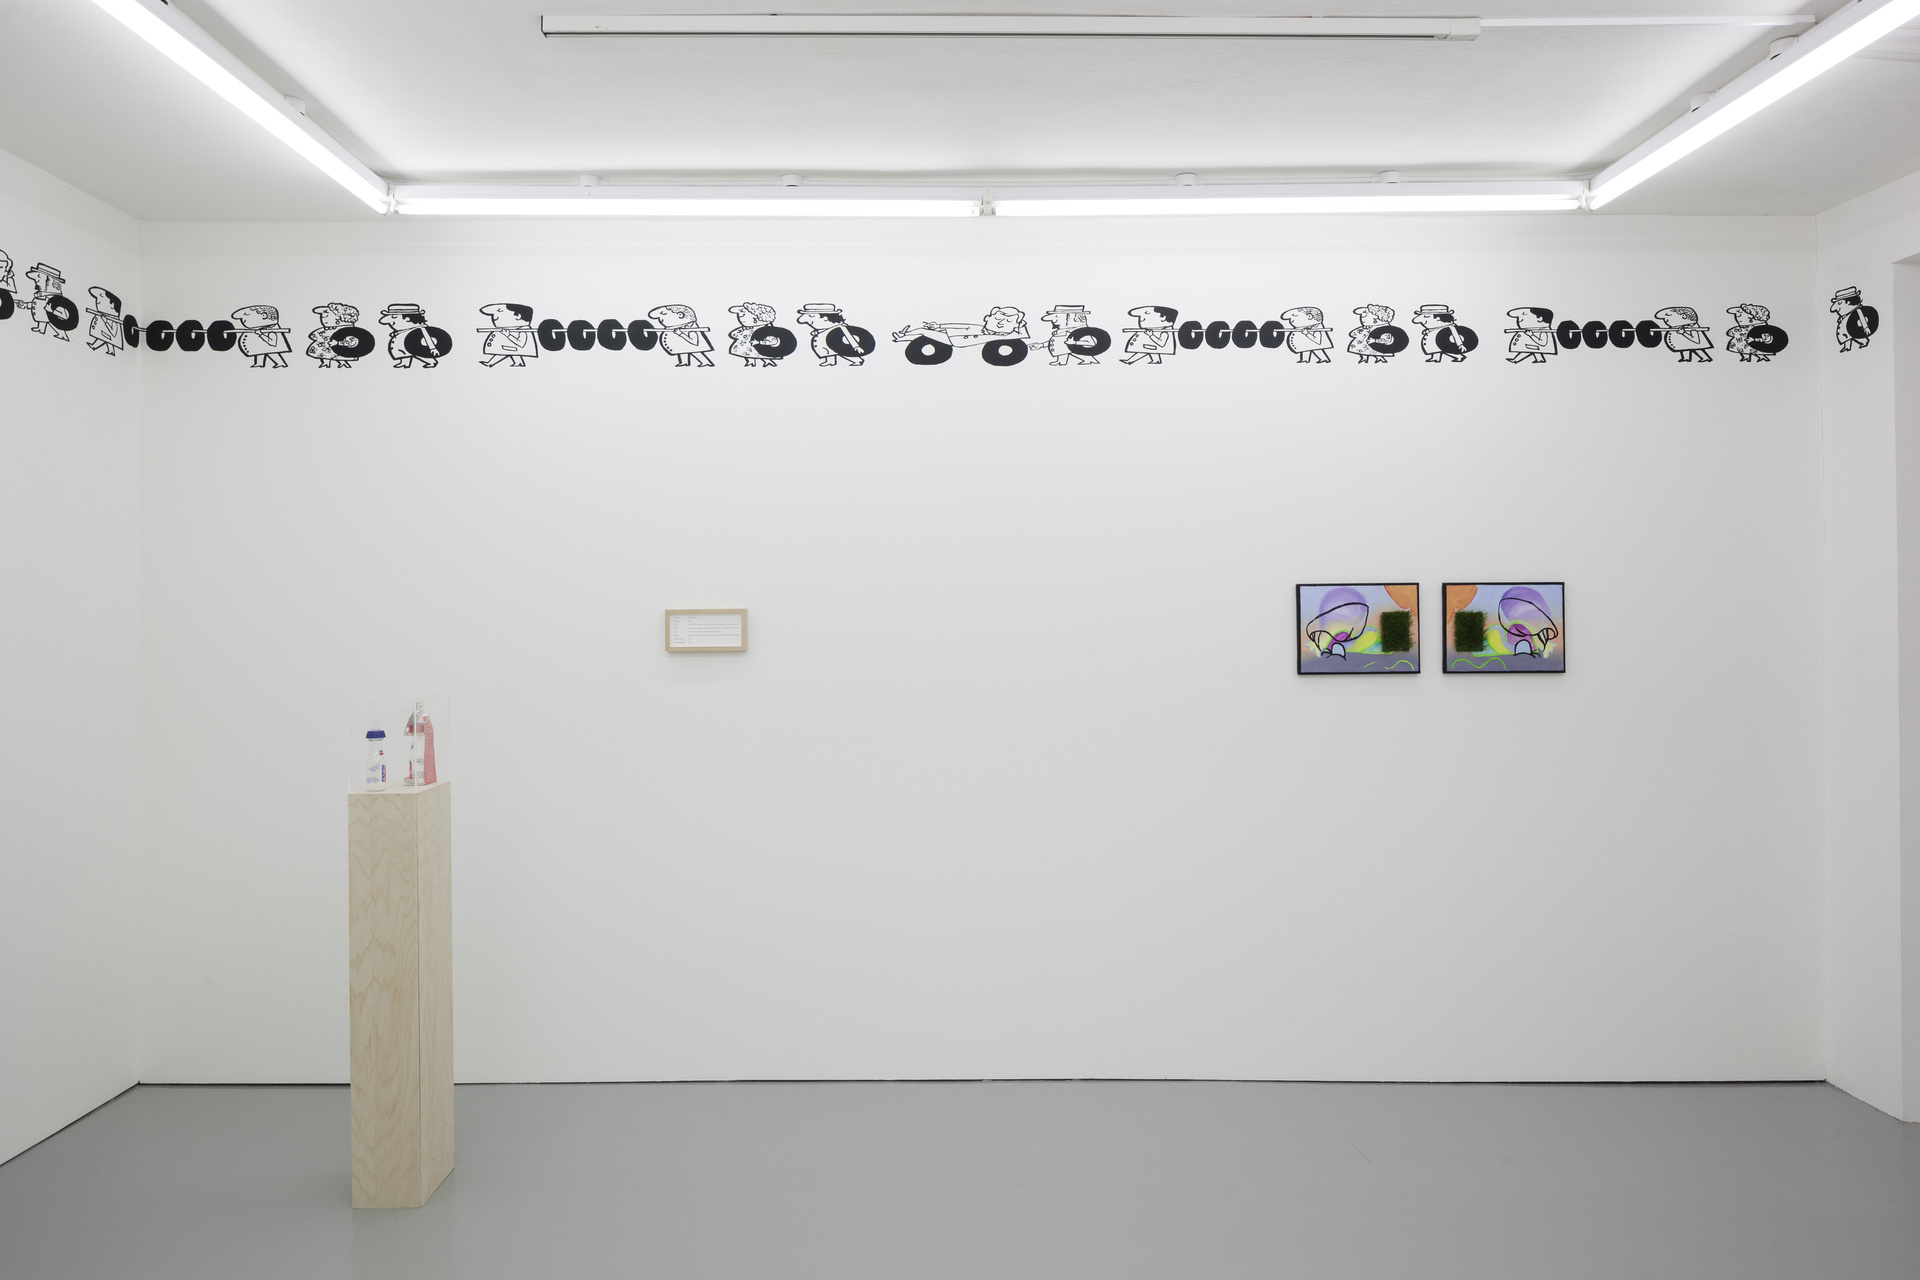 M'm! M'm! Good!, installation view, Rowing, London, 2015.jpg - 4